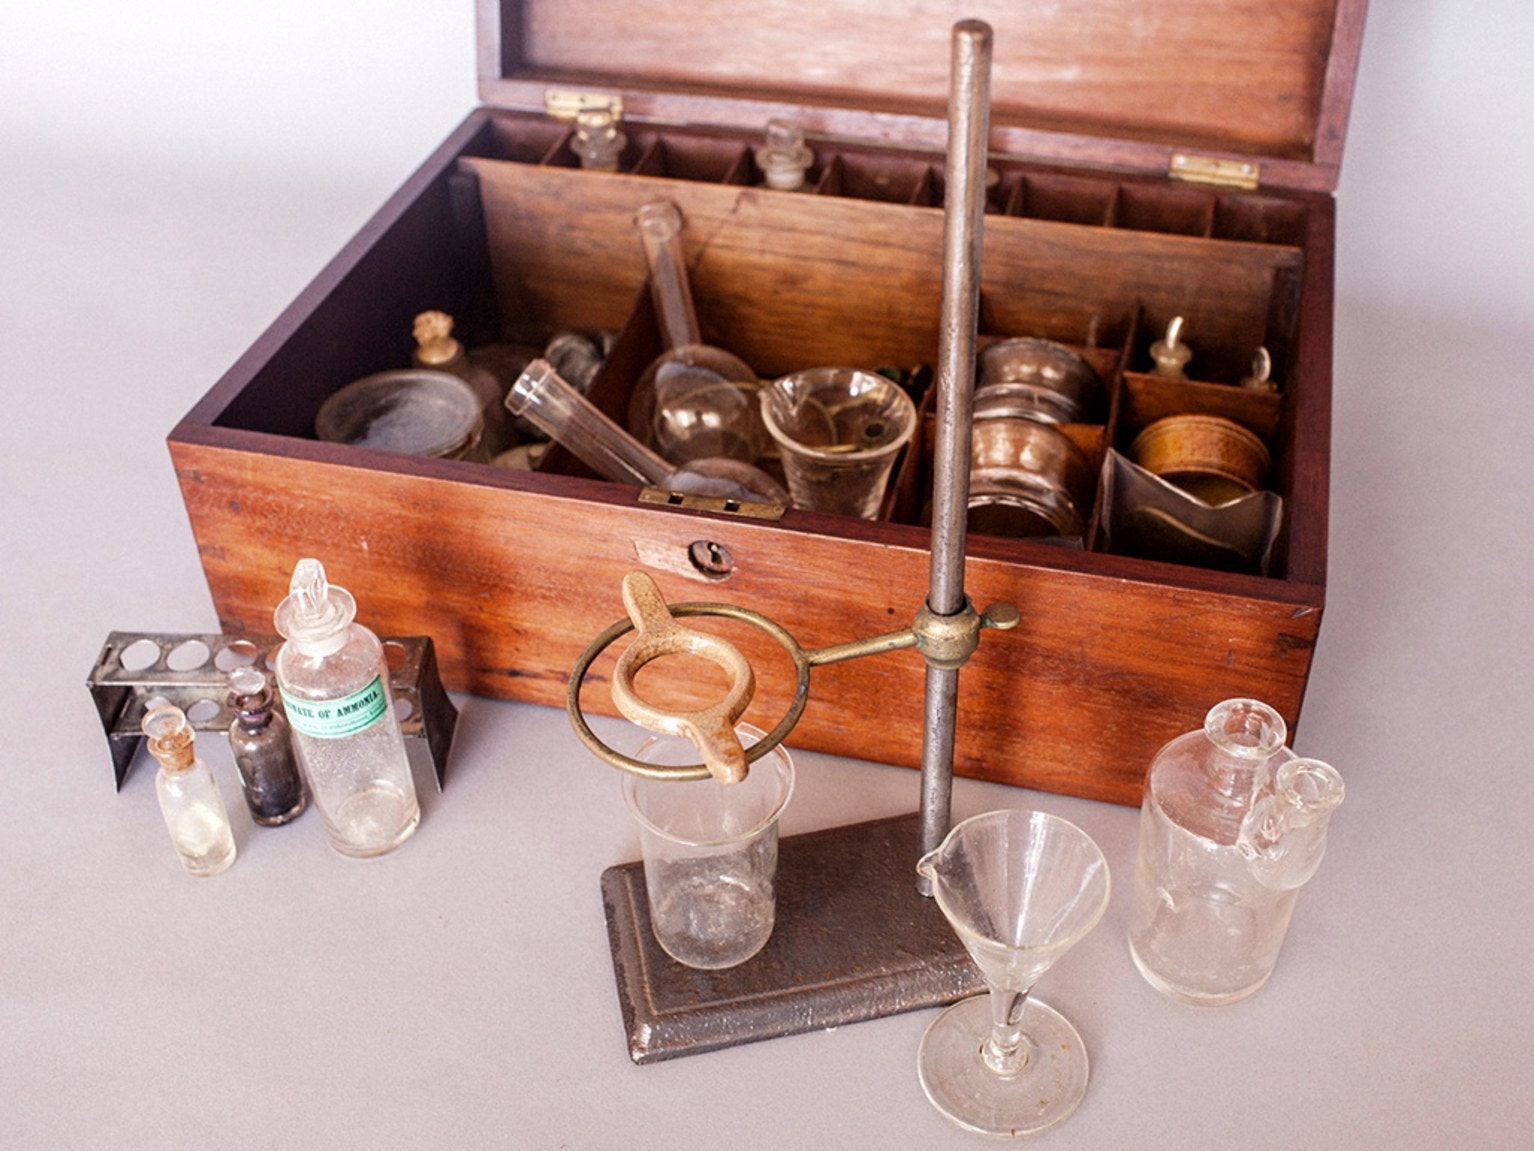 Vintage Chemistry Sets Show We Used To Be Way More Chill